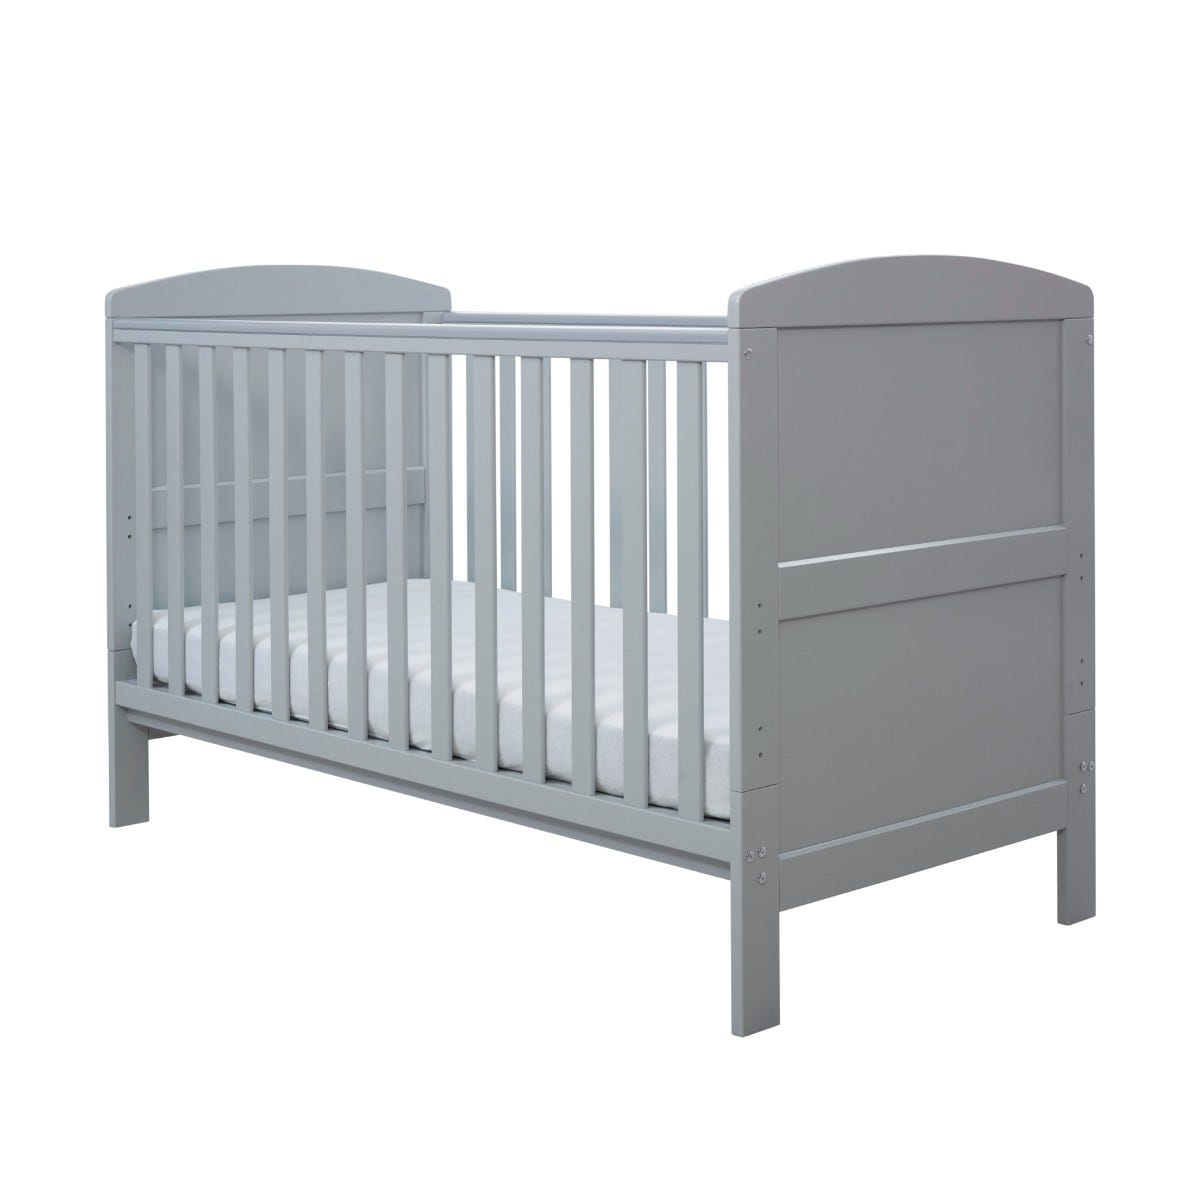 Ickle Bubba Coleby Classic Cot Bed Grey